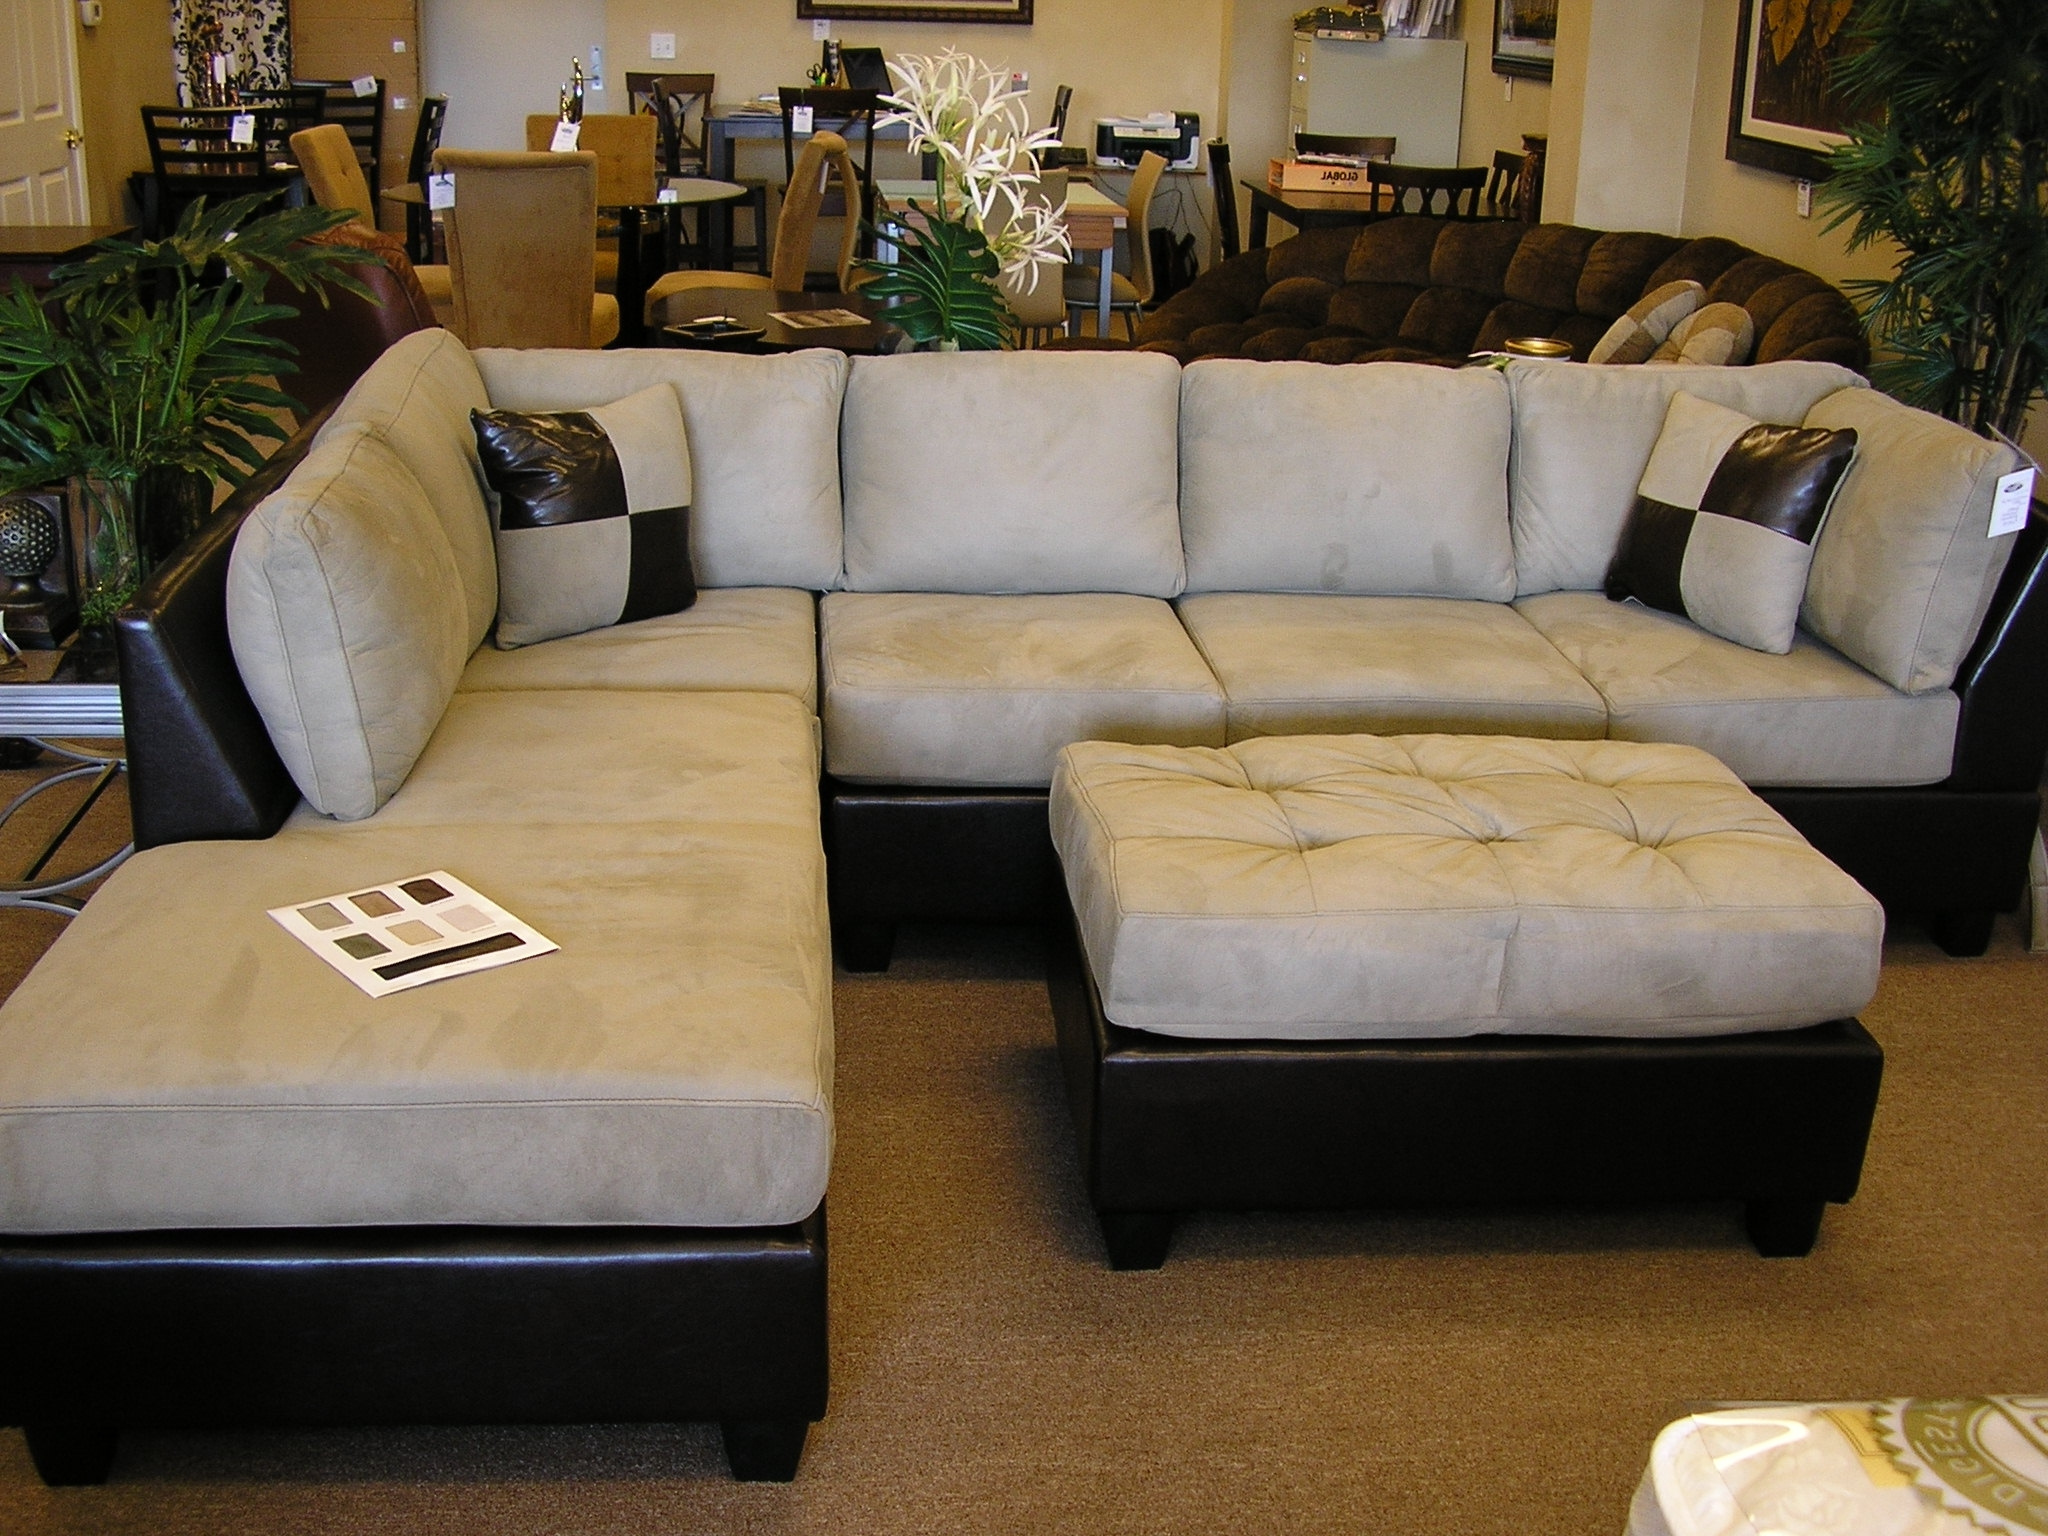 2017 Sectional Sofas With Chaise And Ottoman Regarding Furniture : Sectional Chaise Lounge Sofa Double Along With (View 1 of 15)